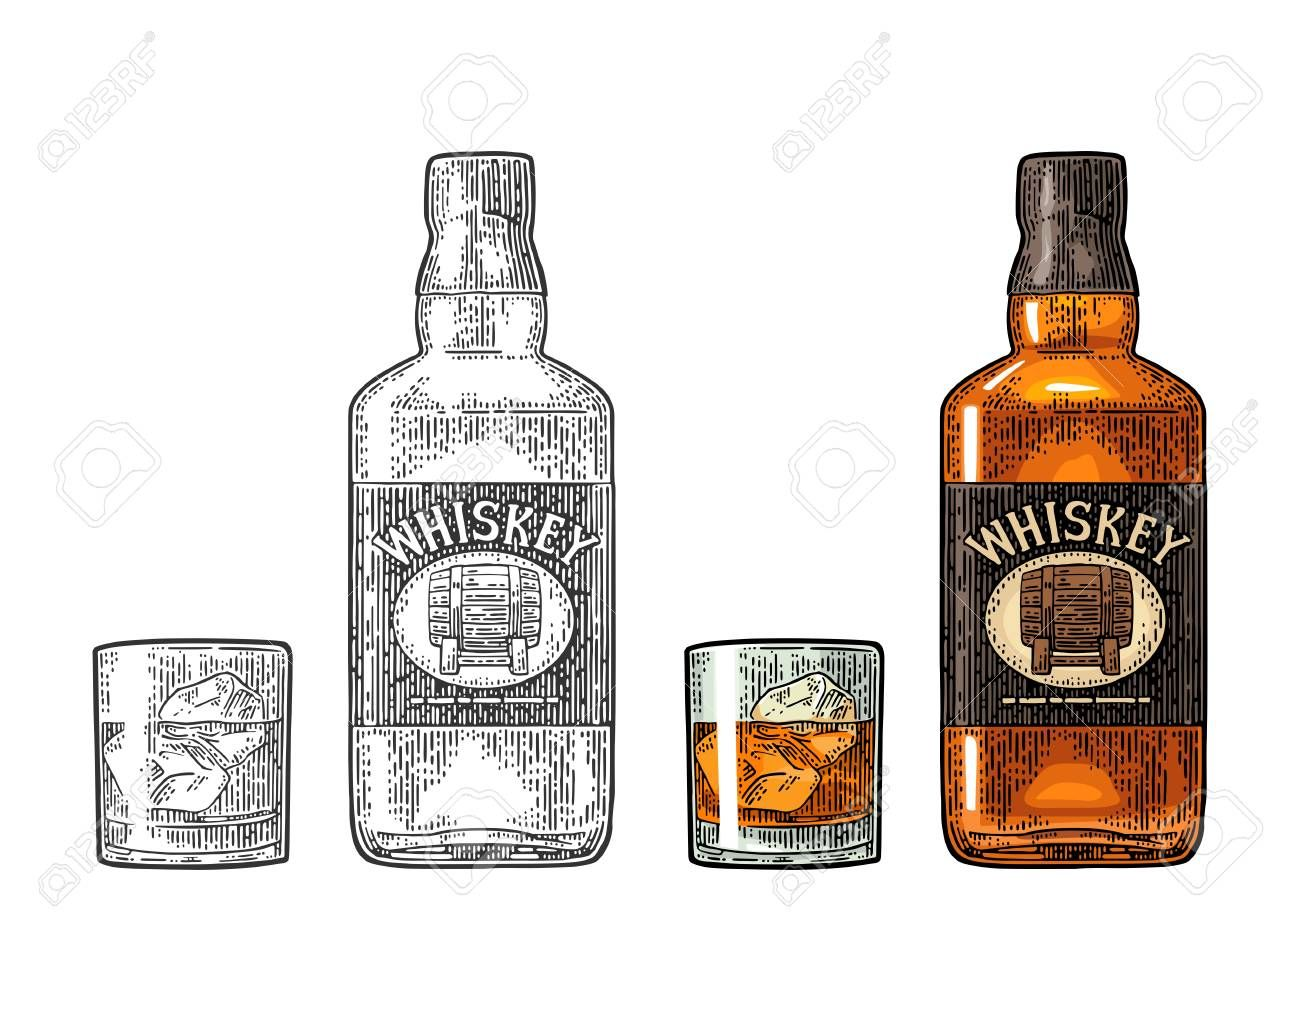 Whiskey glass with ice cubes and bottle label with barrel